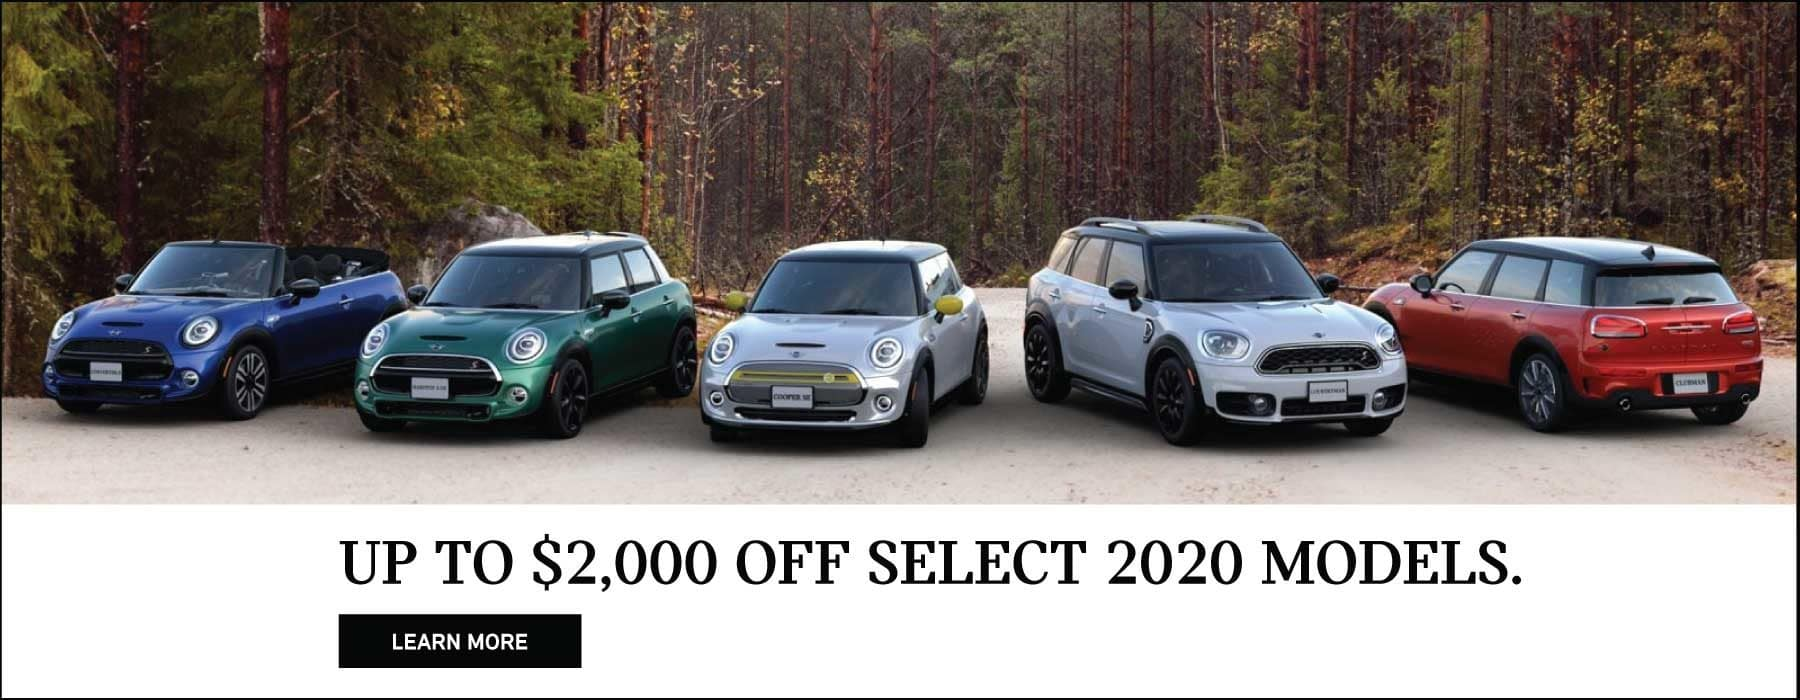 UP TO $2000 OFF SELECT 2020 MODELS